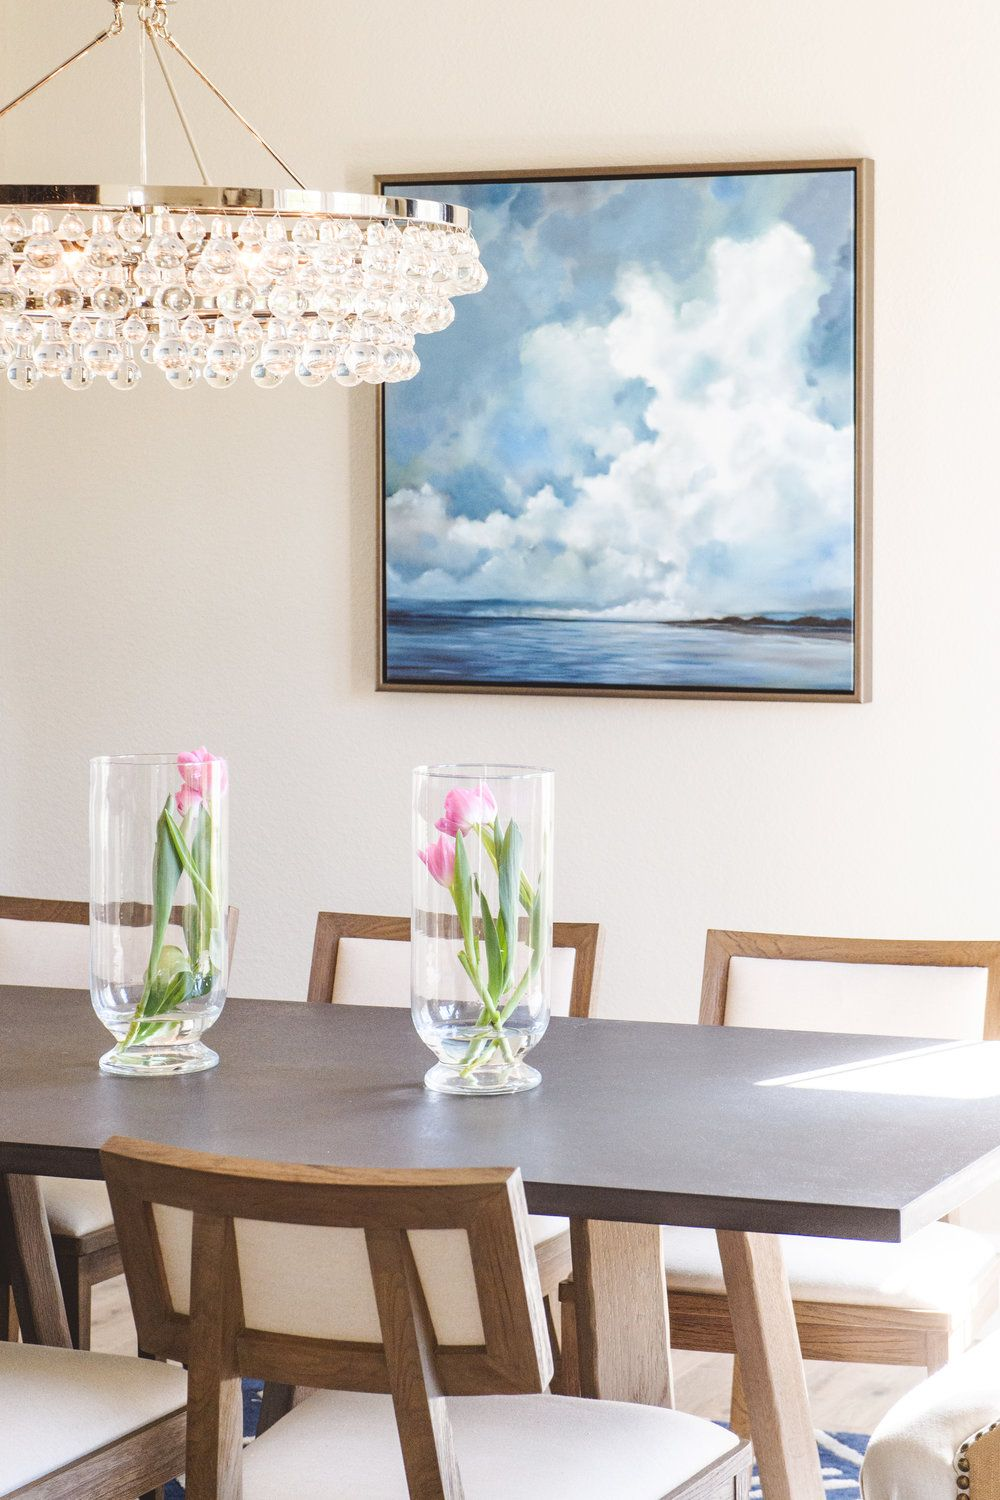 Bling Chandelier From Interior Designers At Savvy Interiors |  SavvyInteriors.com #Chandelier #diningroom